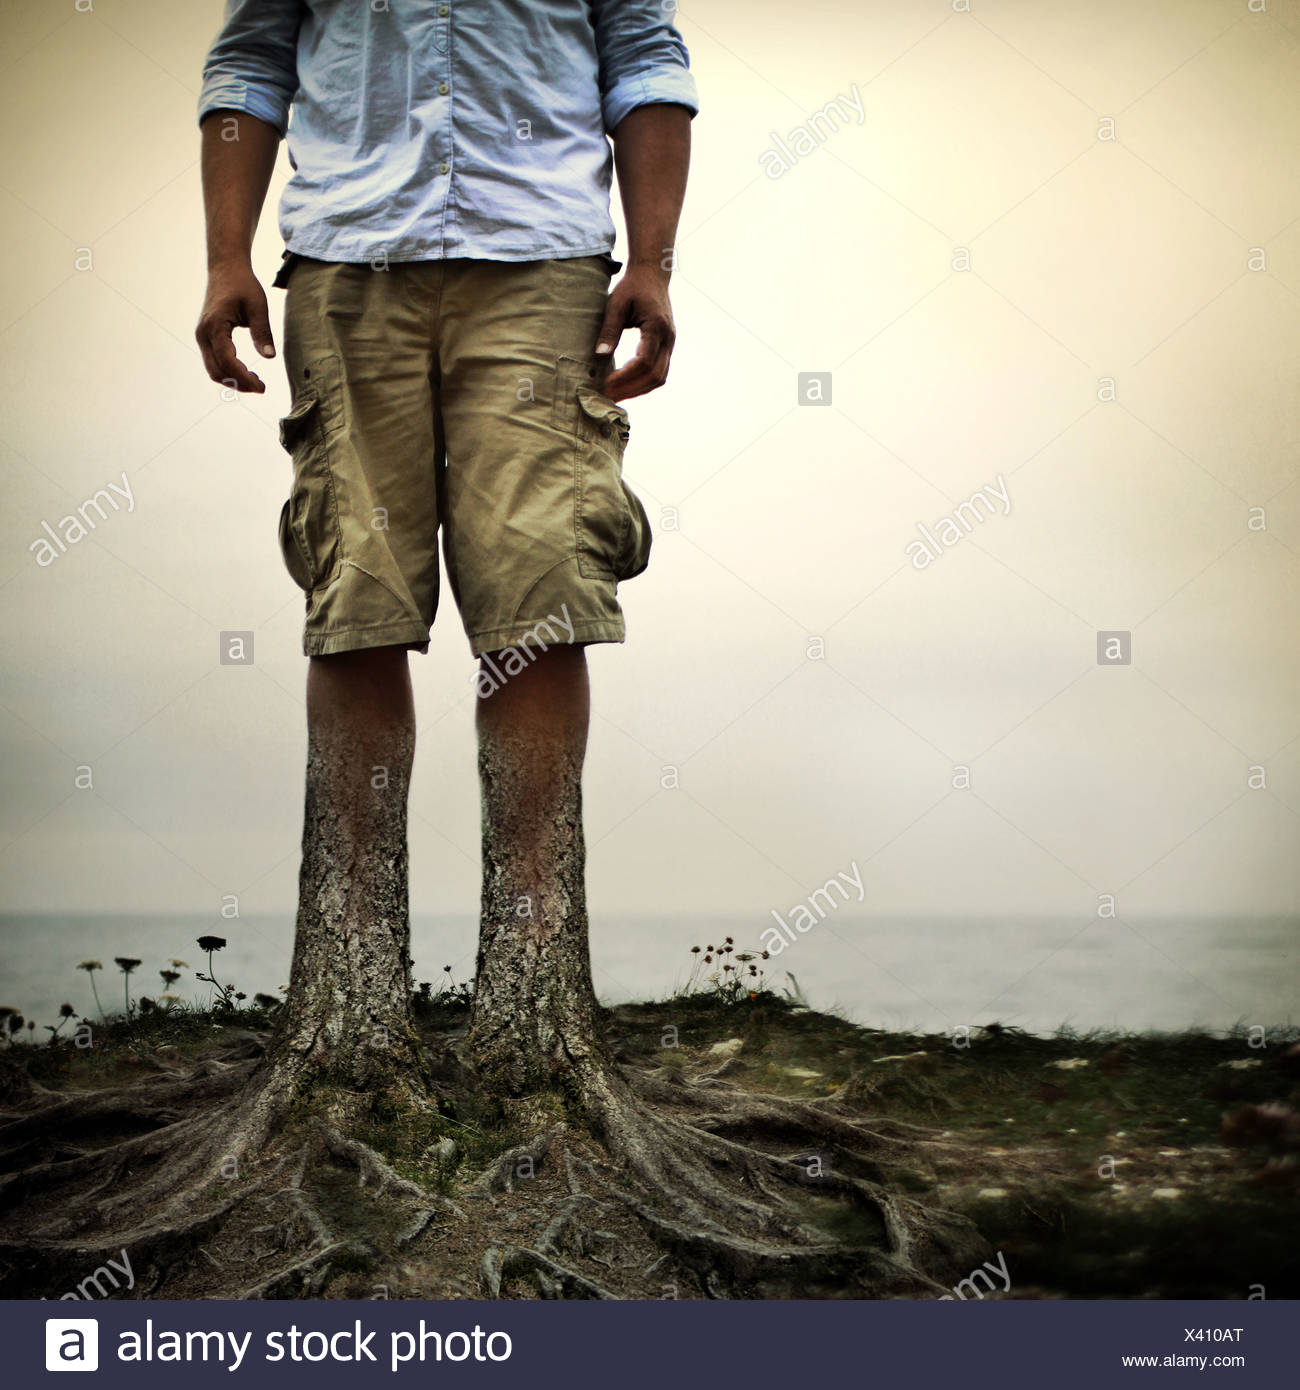 man with tree trunks for legs - Stock Image